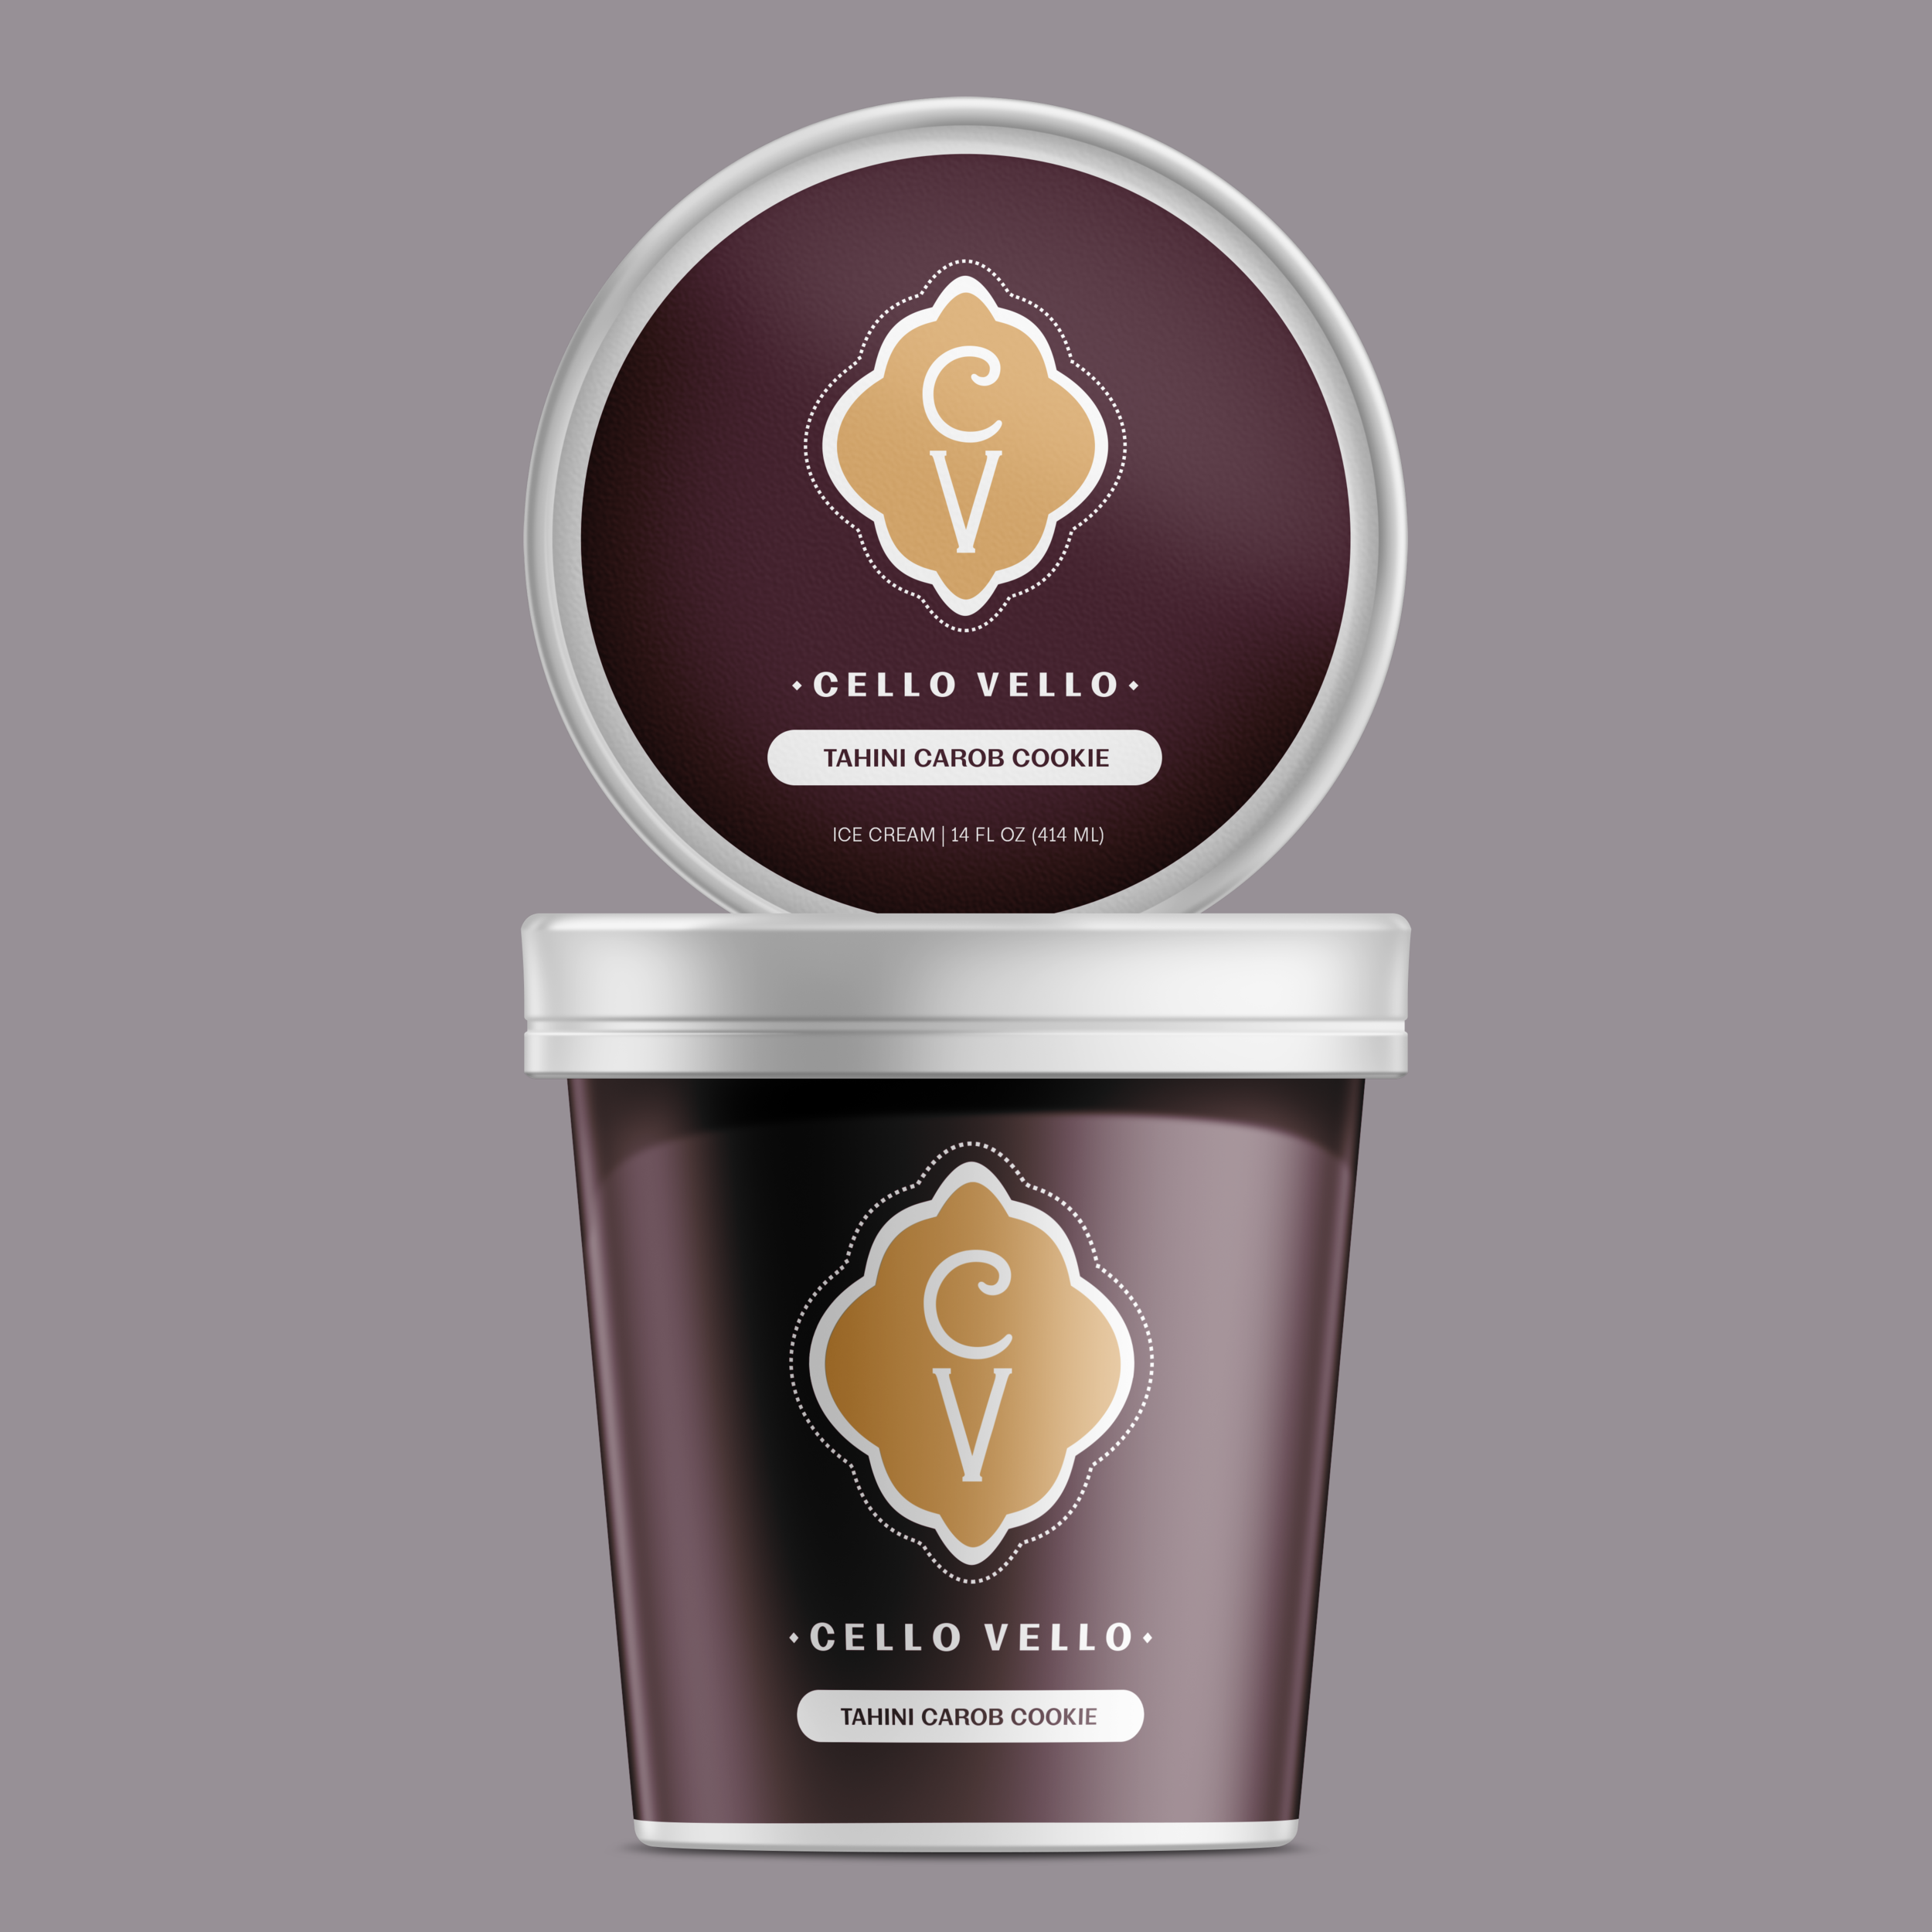 Naming, Visual Identity, and Packaging for Mediterranean Ice Cream Brand